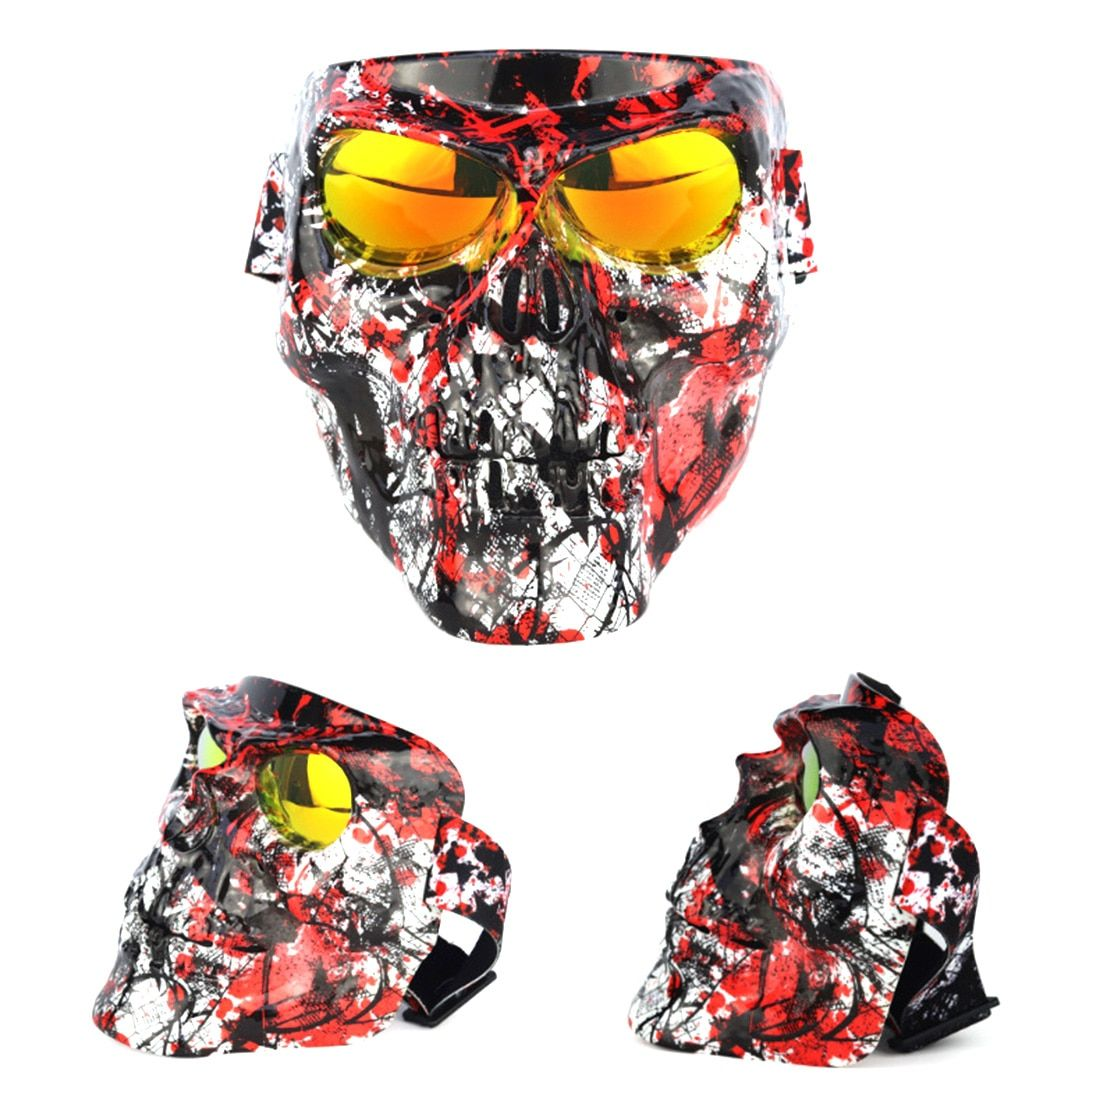 for Nerf War Games 18cm Electroplating Skull Tactical Face Mask with Windproof Goggles for Airsoft Halloween Outdoor Toys